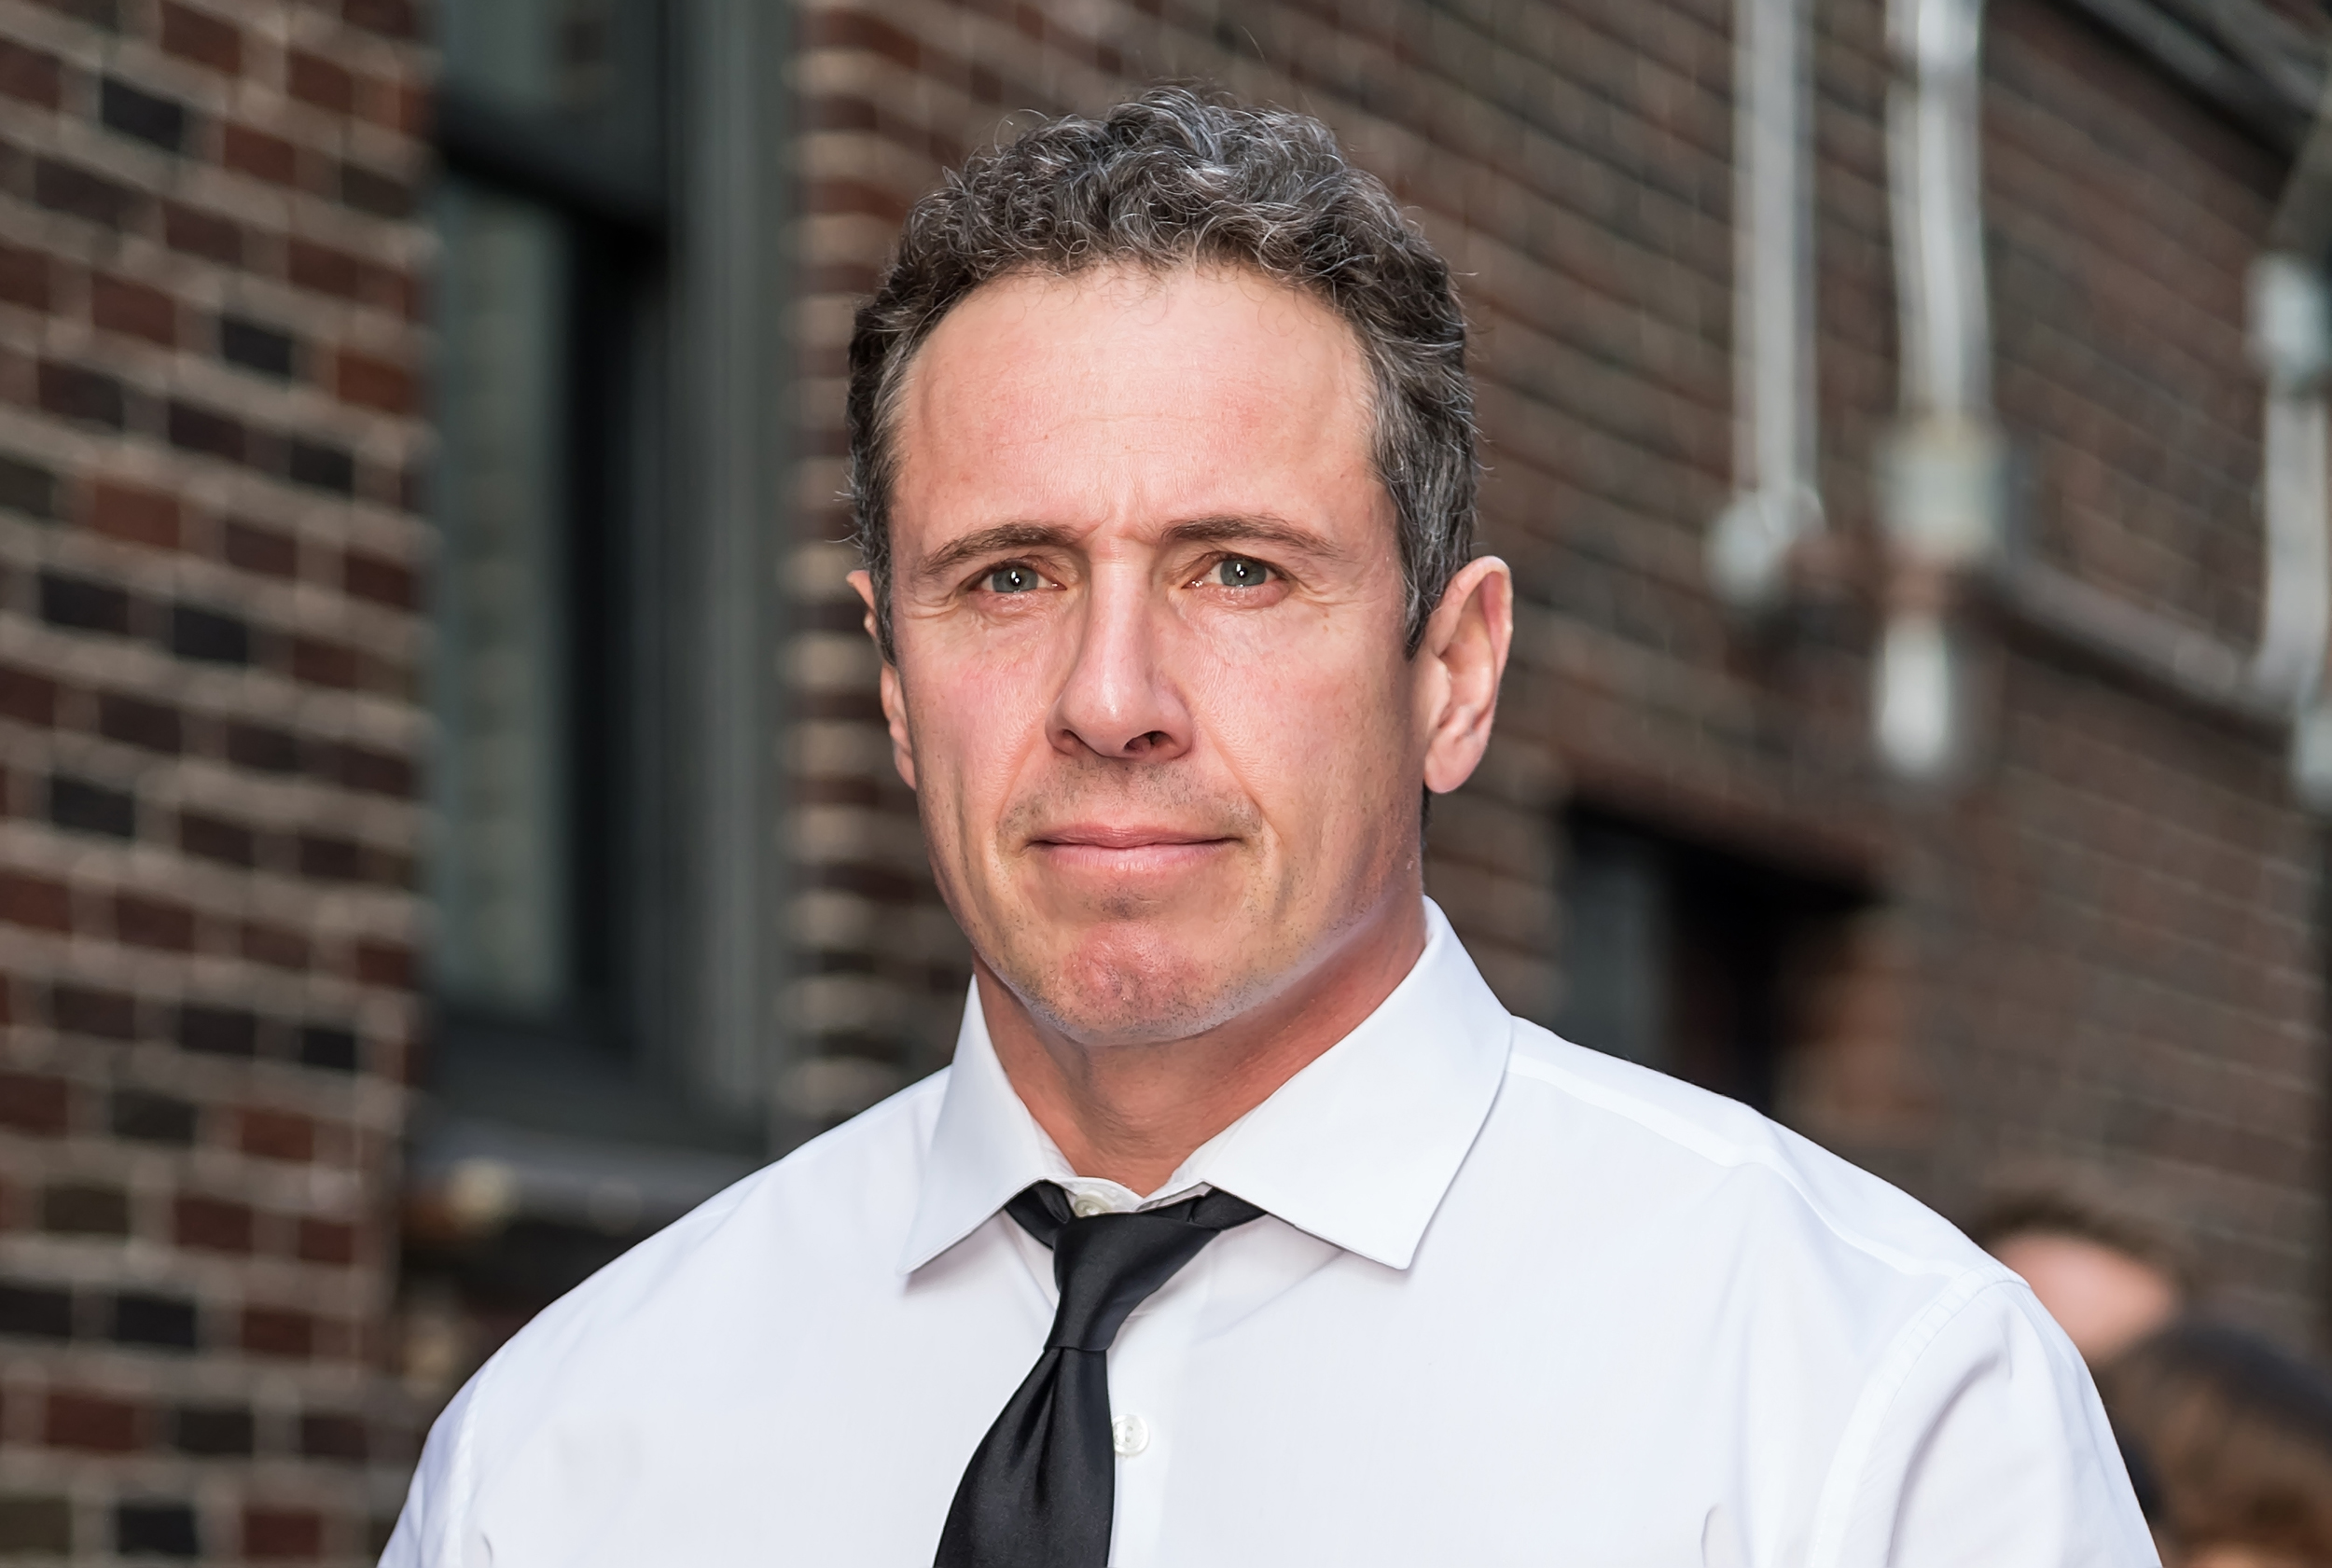 Chris Cuomo's former boss at ABC News accuses the CNN anchor of sexual harassment